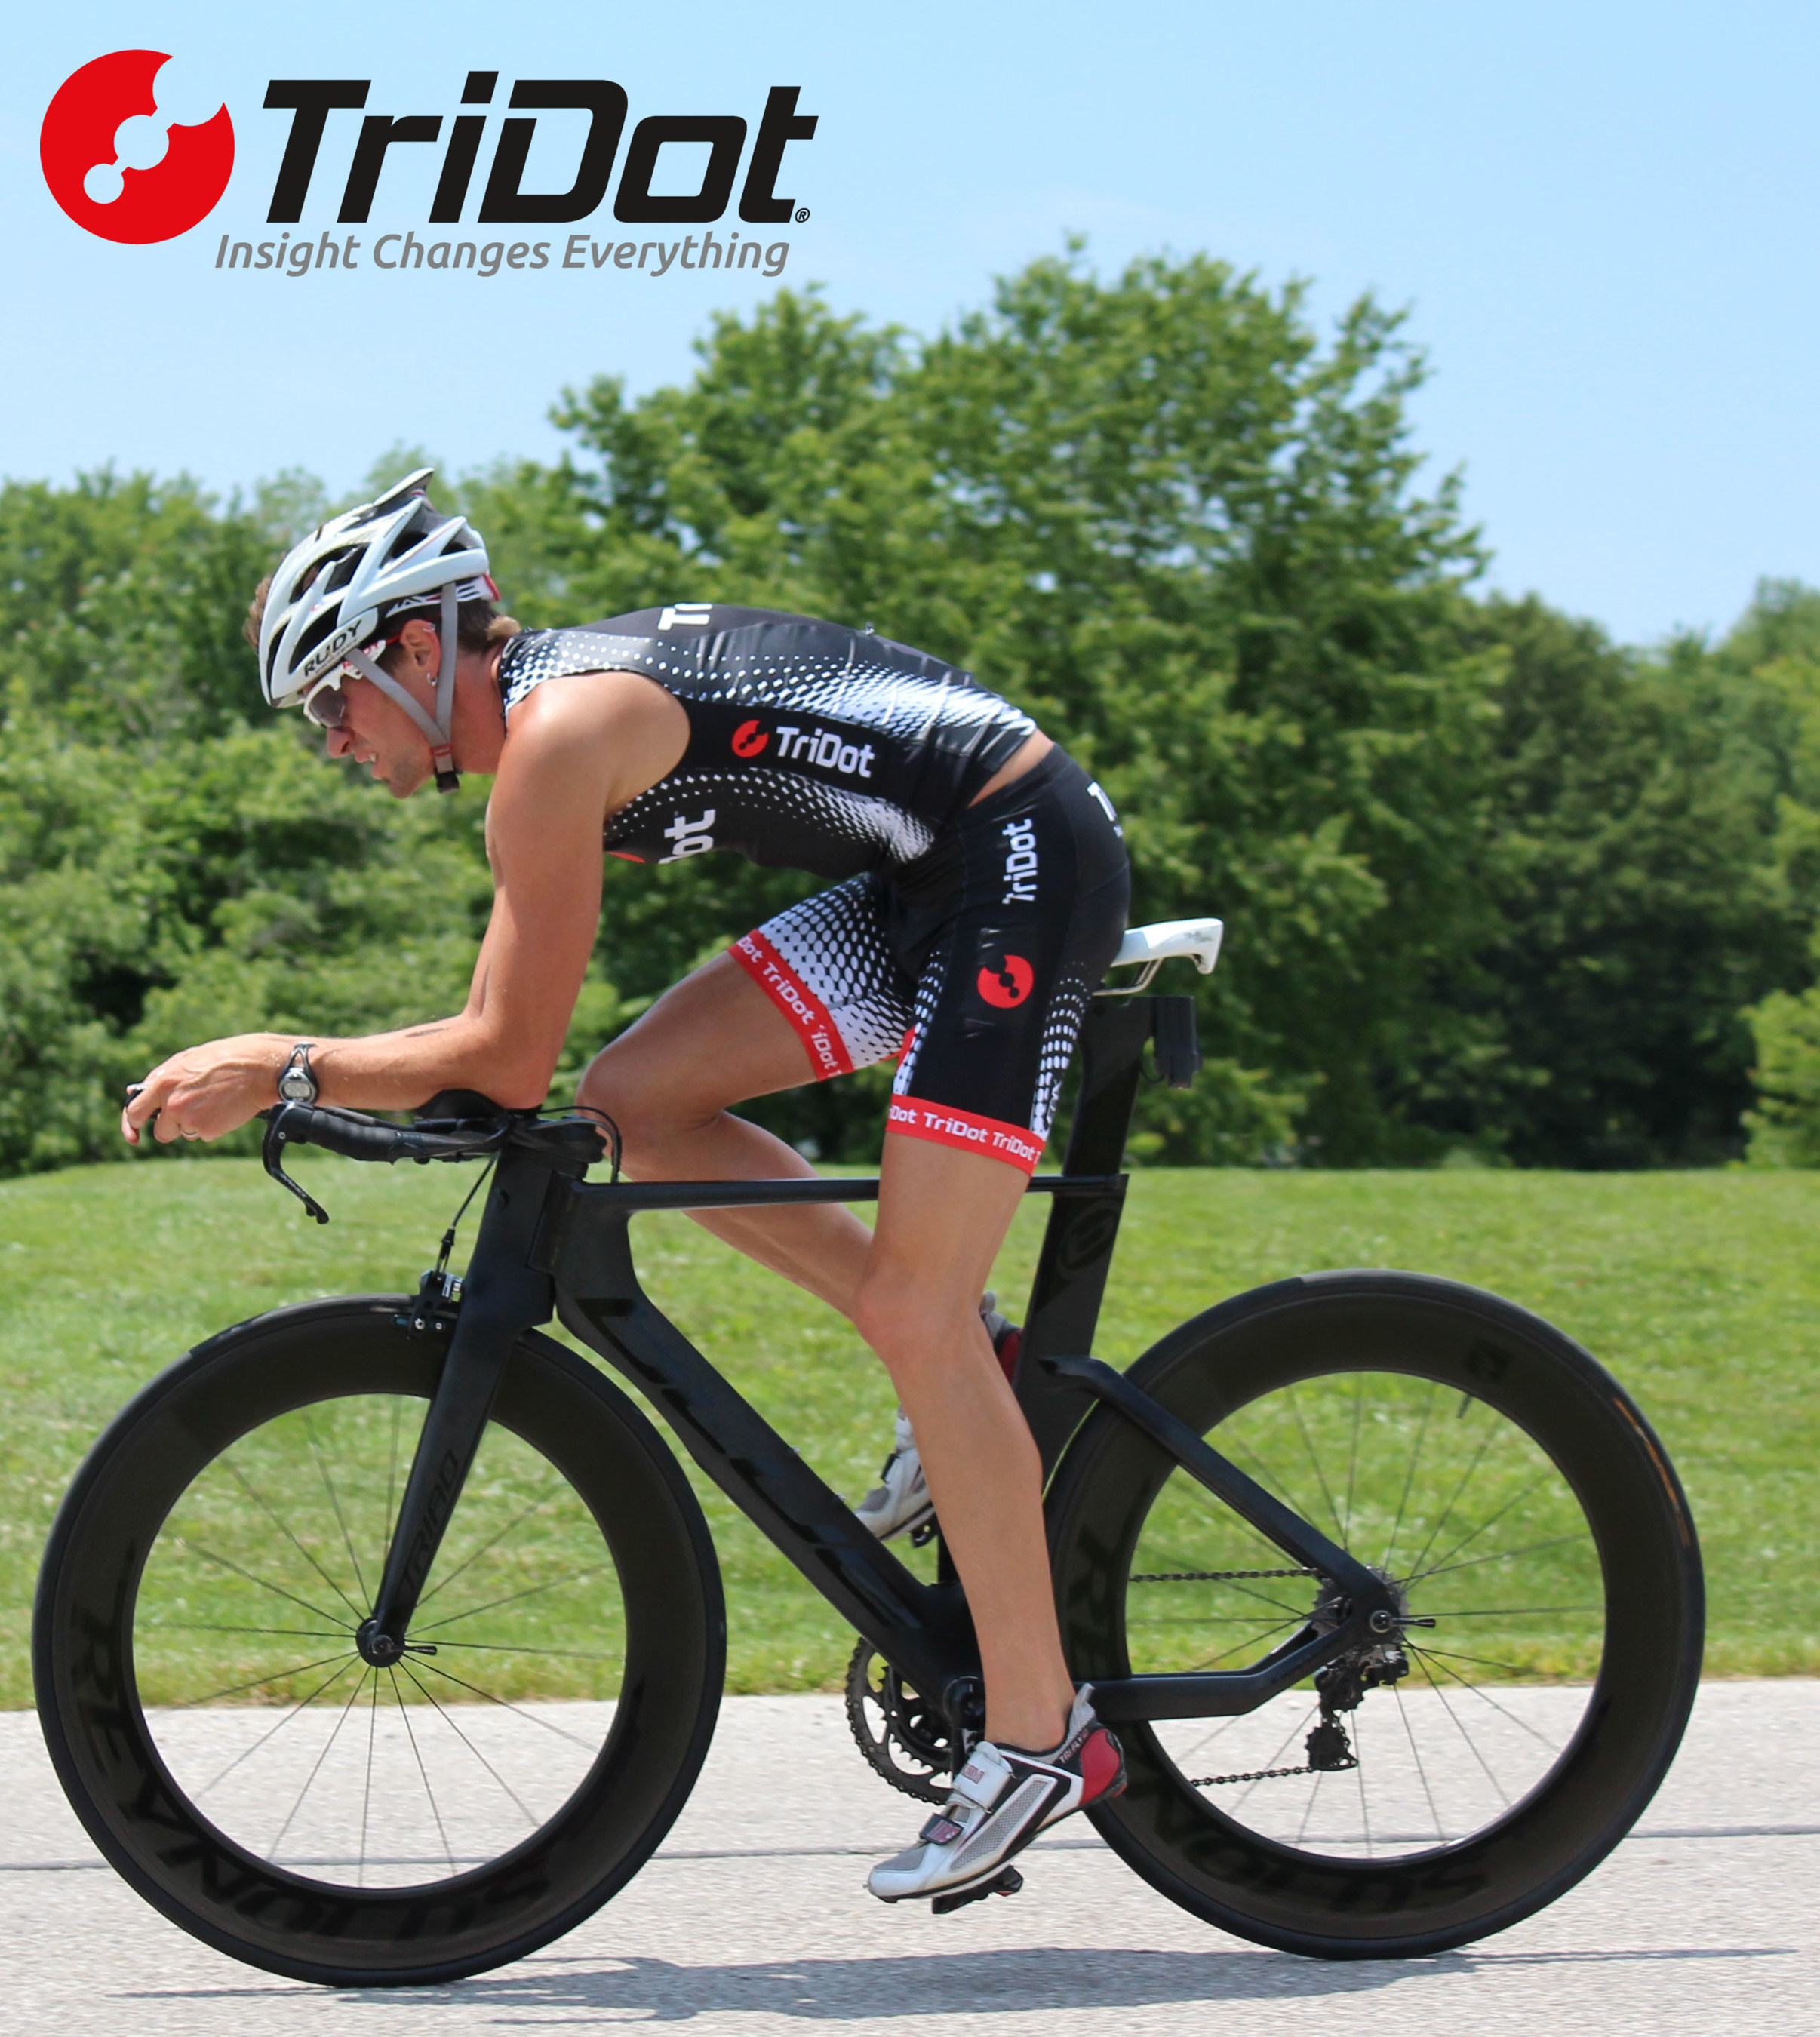 TriDot provides advanced analytics triathlon training and coaching software that improves results in up to 30% less training time and saves coaches hours a week in training plan design. TriDot discovers critical trends, patterns, and relationships in training data, revealing key hidden and underlying insight that results in optimized and dynamic triathlon training. TriDot provides unmatched insight to inspire and empower triathletes to their best performance.